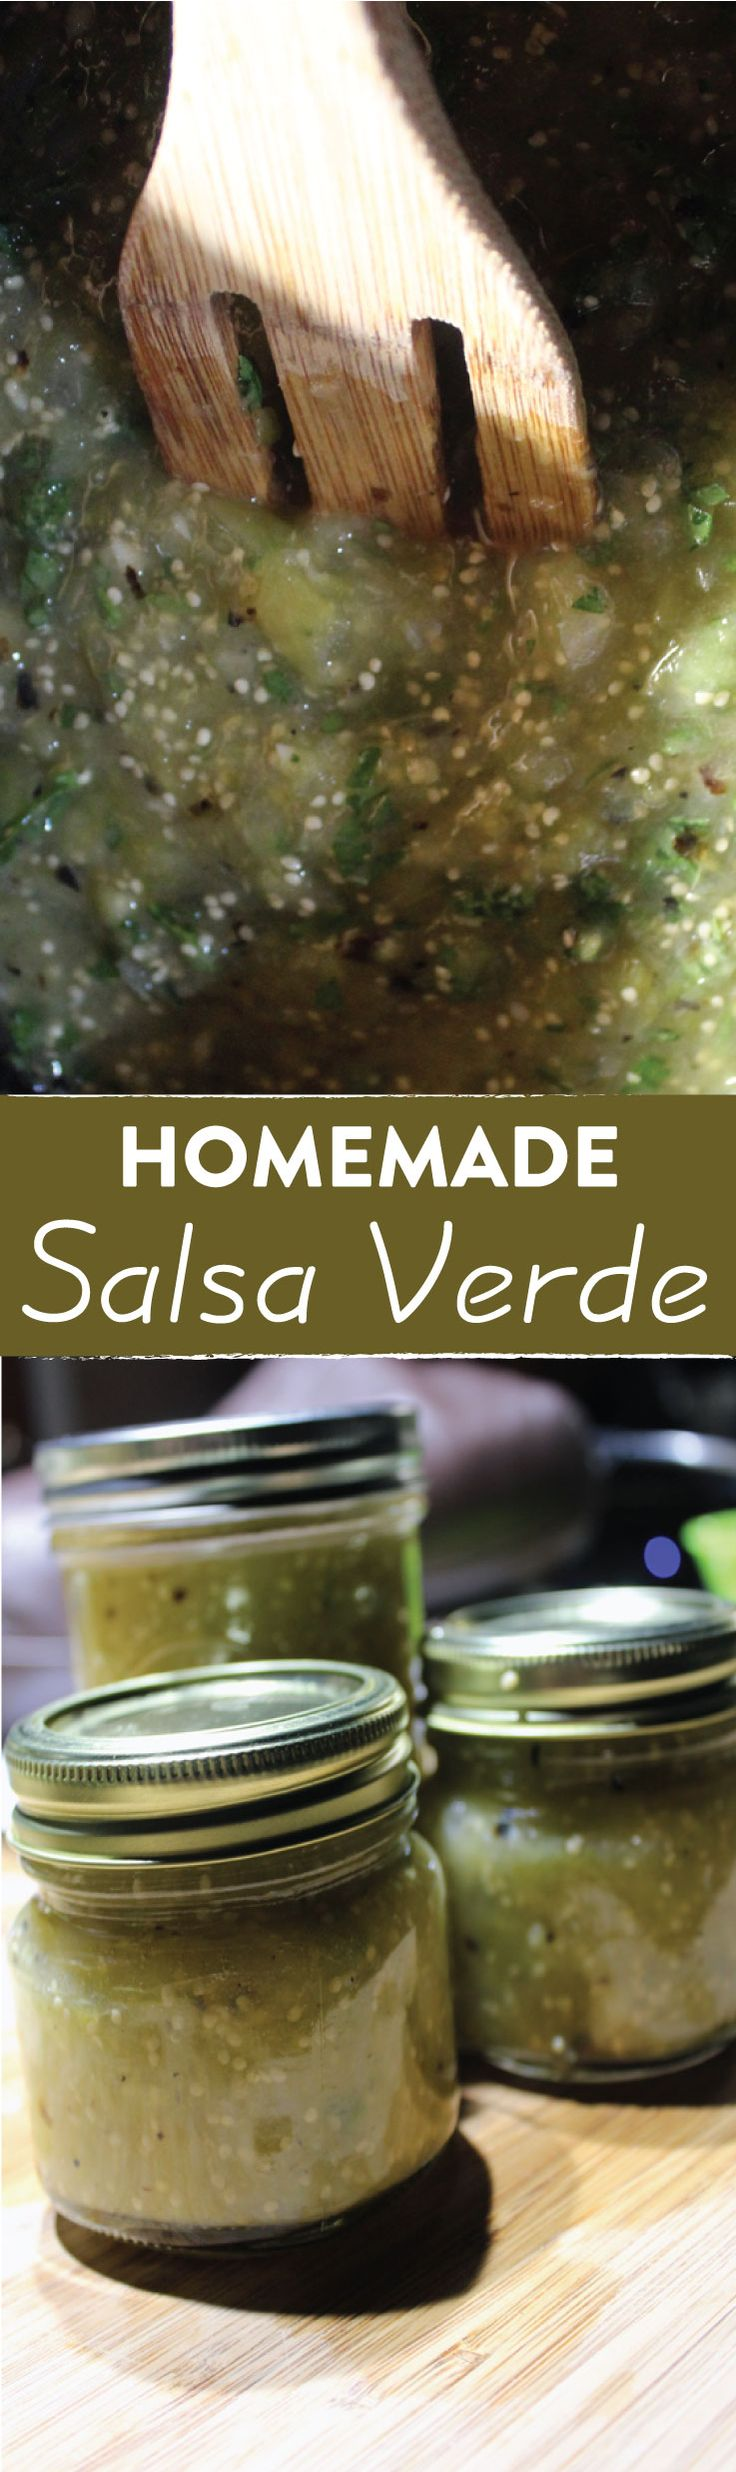 This is by far my favorite salsa, and that's coming from someone who LOVES salsa. This Roasted Spicy Tomatillo Salsa Verde Recipe is smoky, spicy, sweet, bright, and complex, and good on chips, pork, chicken, and in chicken chili. The fact that it only has five ingredients and can be made in roughly 20 minutes.